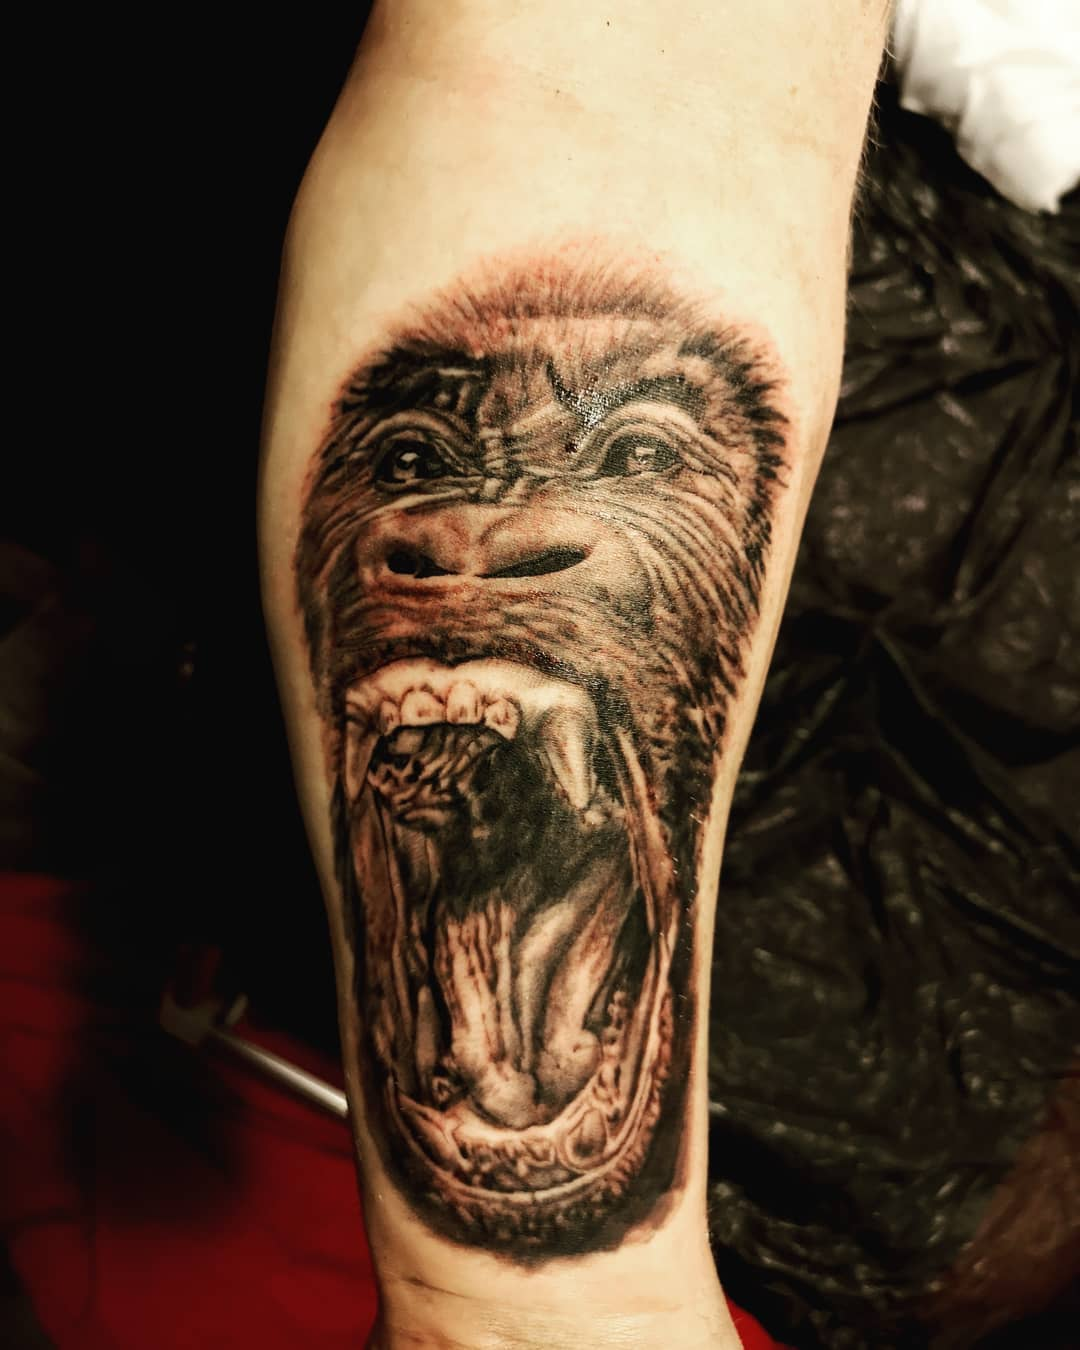 Gorilla on forearm